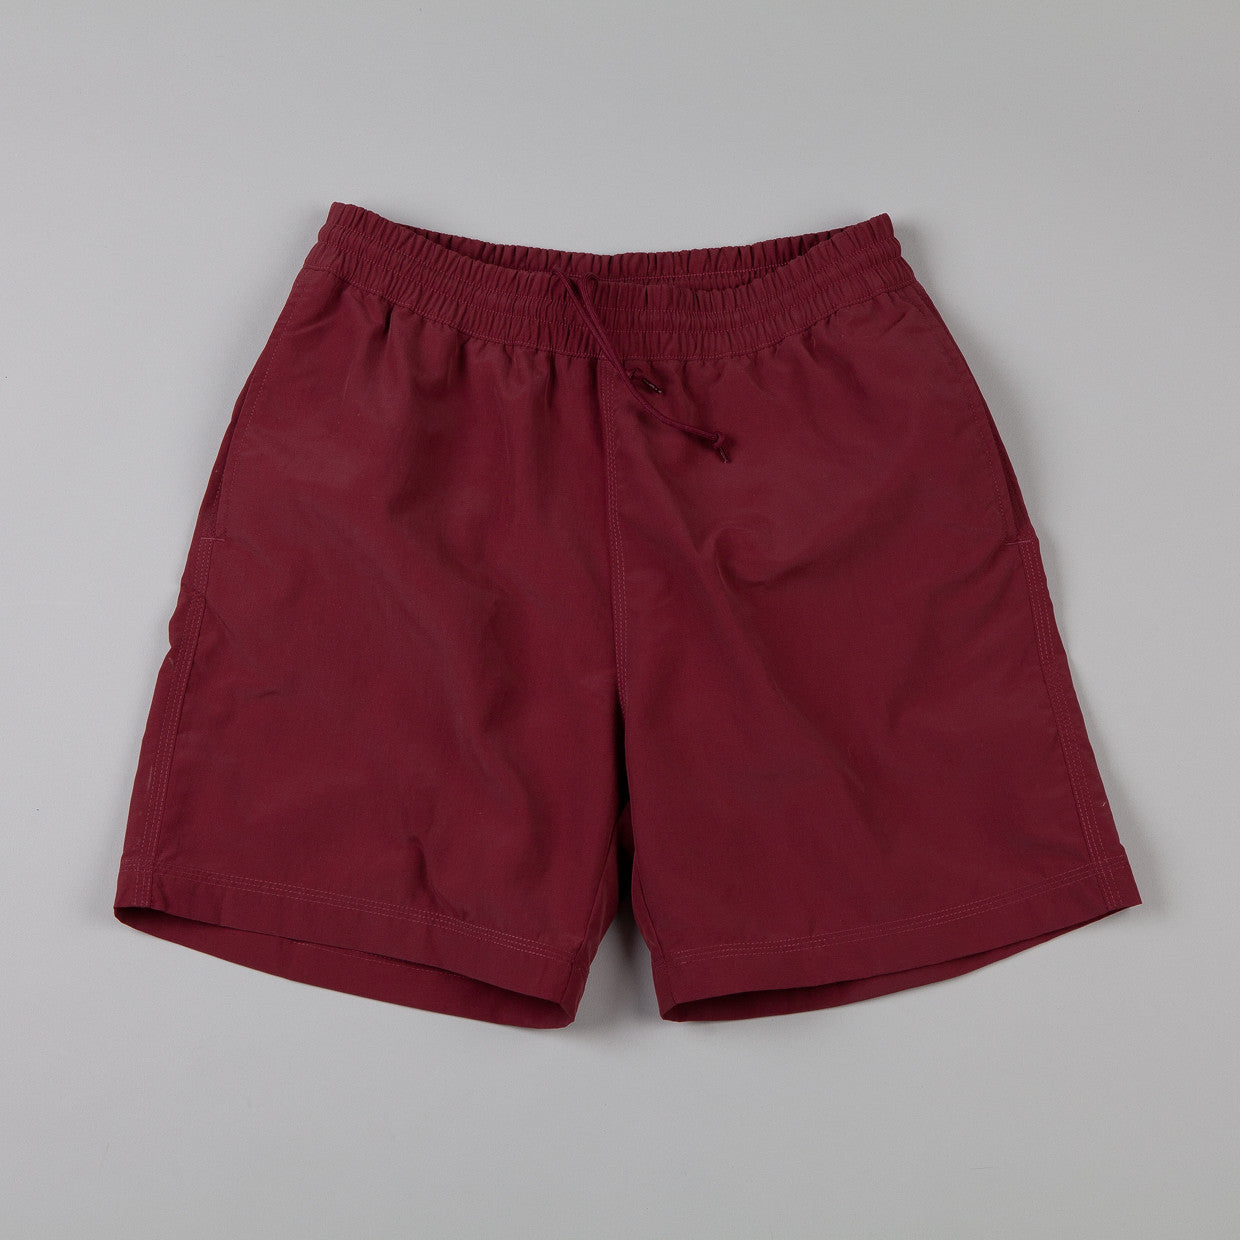 Carhartt Drift Swim Trunk Nylon Cordovan